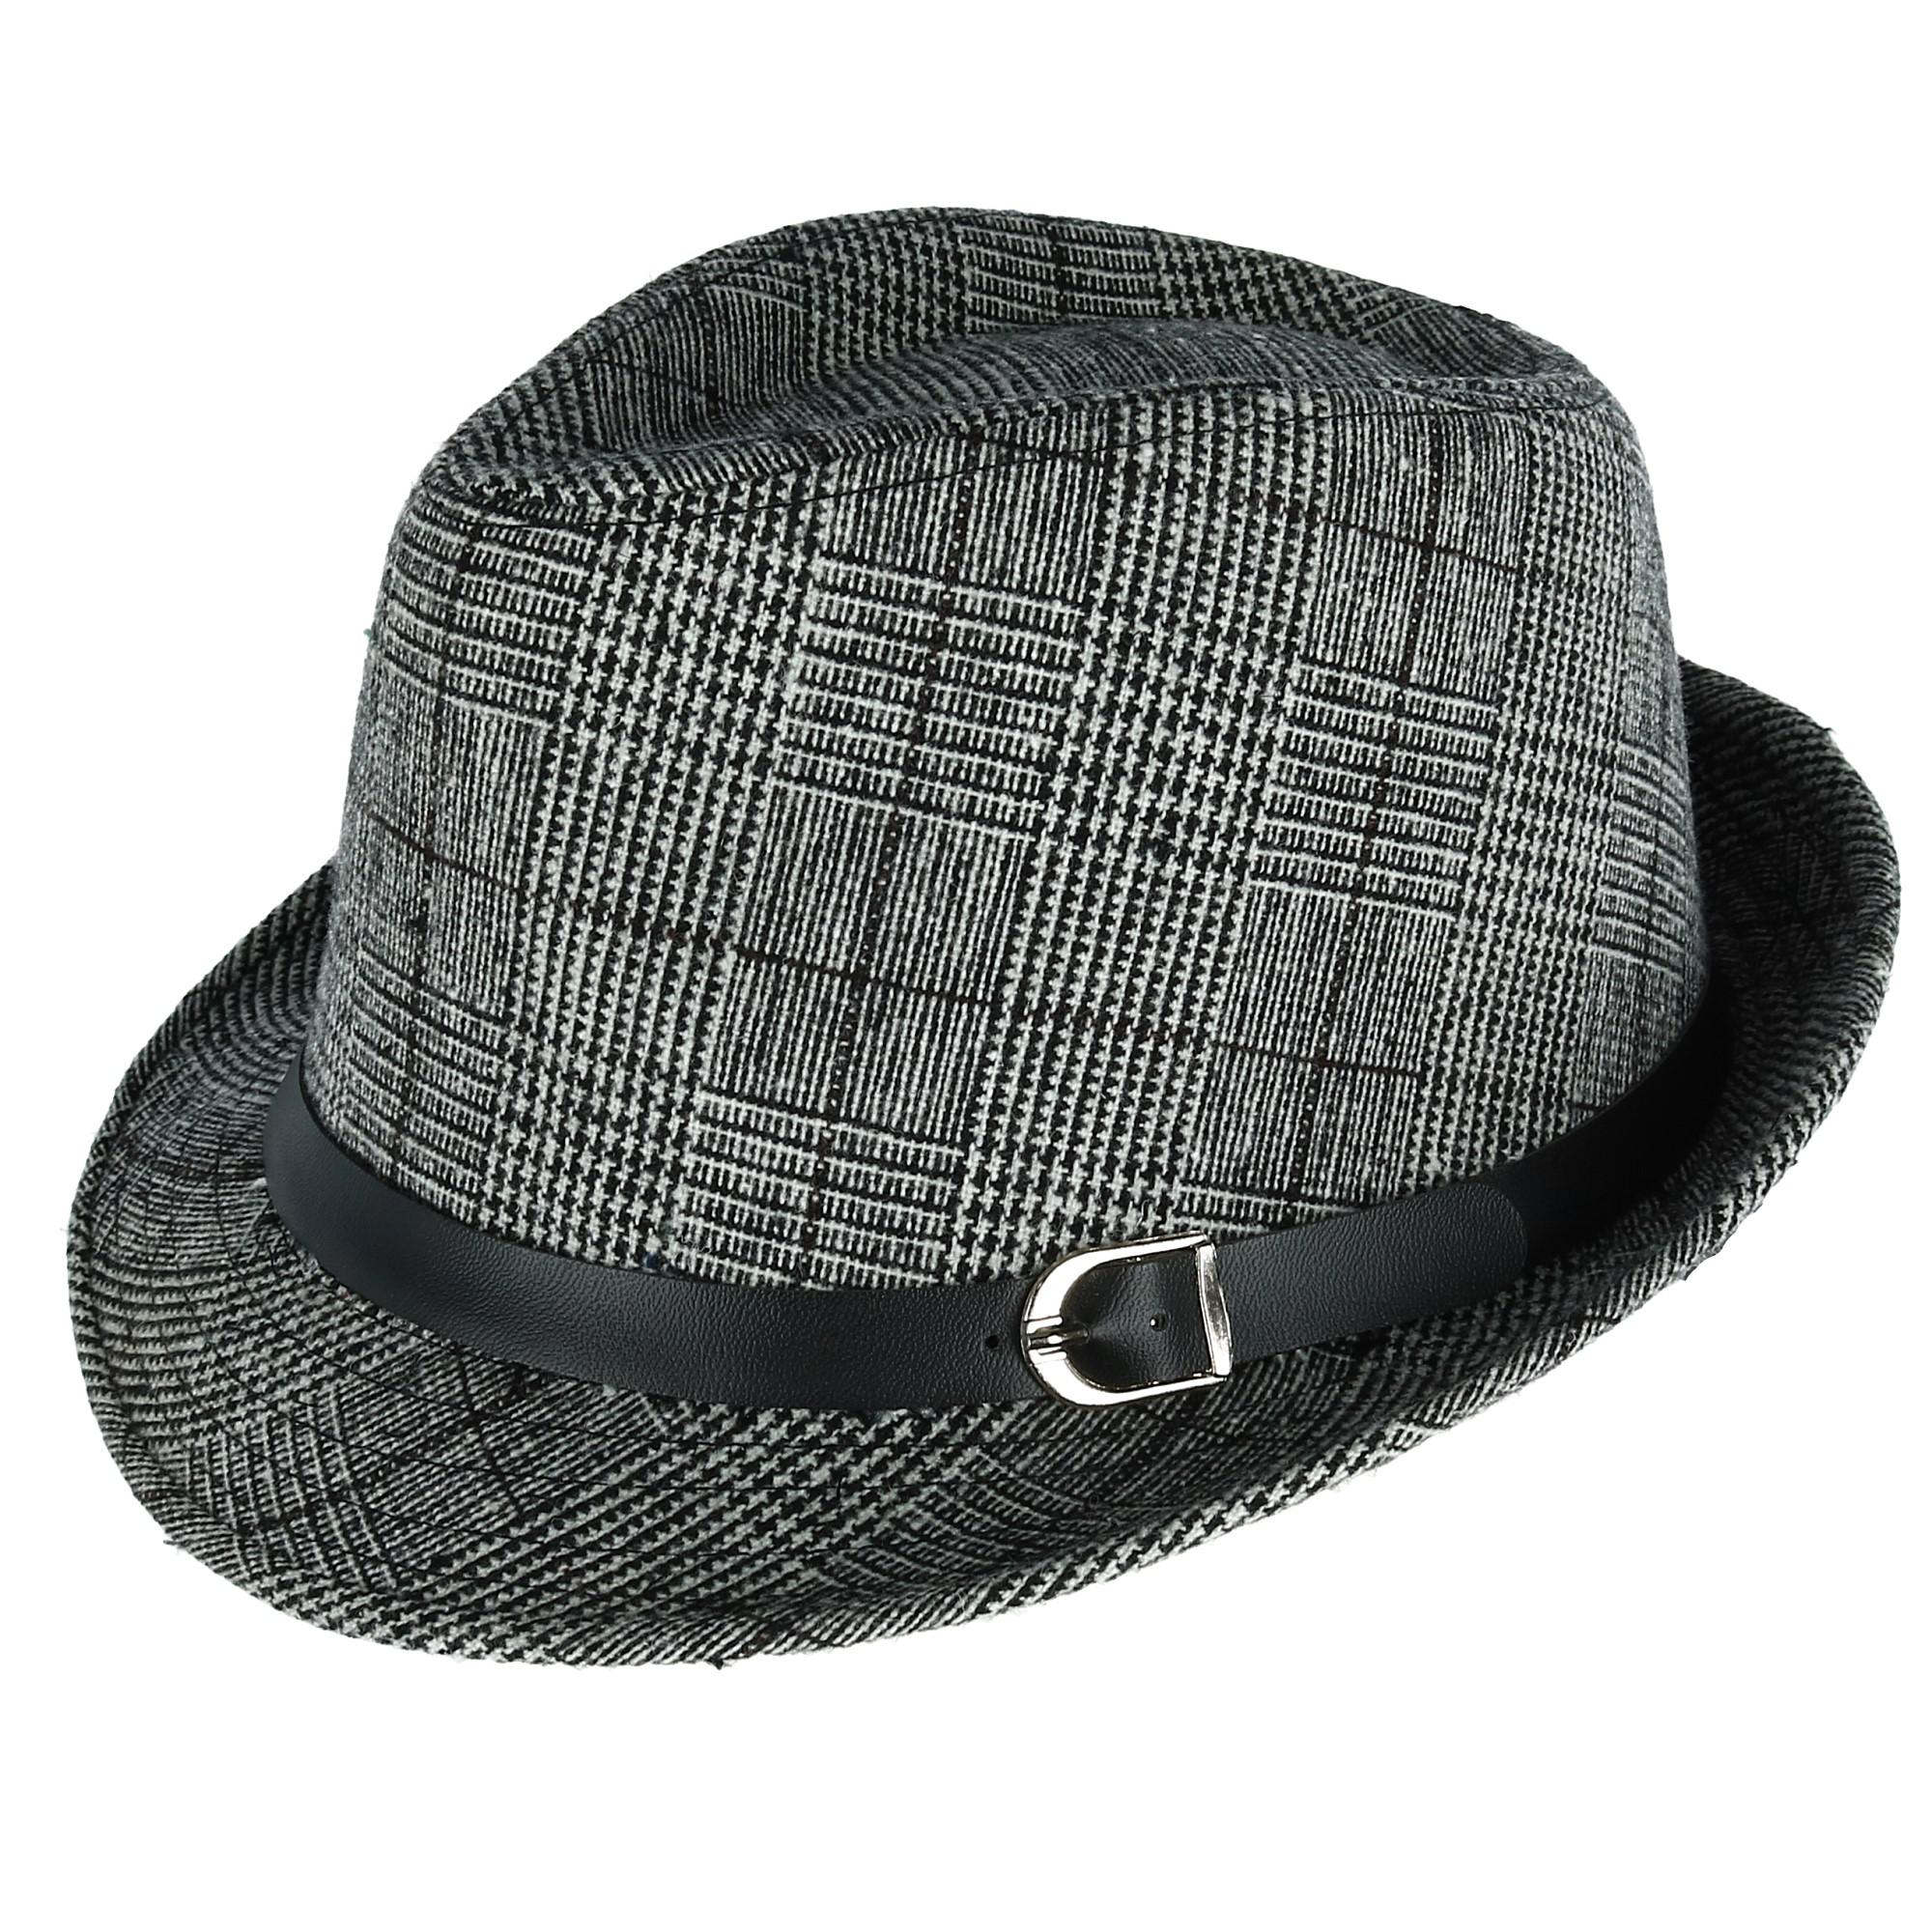 fbf732b89b041 Details about New Westend Men s Plaid Trilby Fedora with Black Band